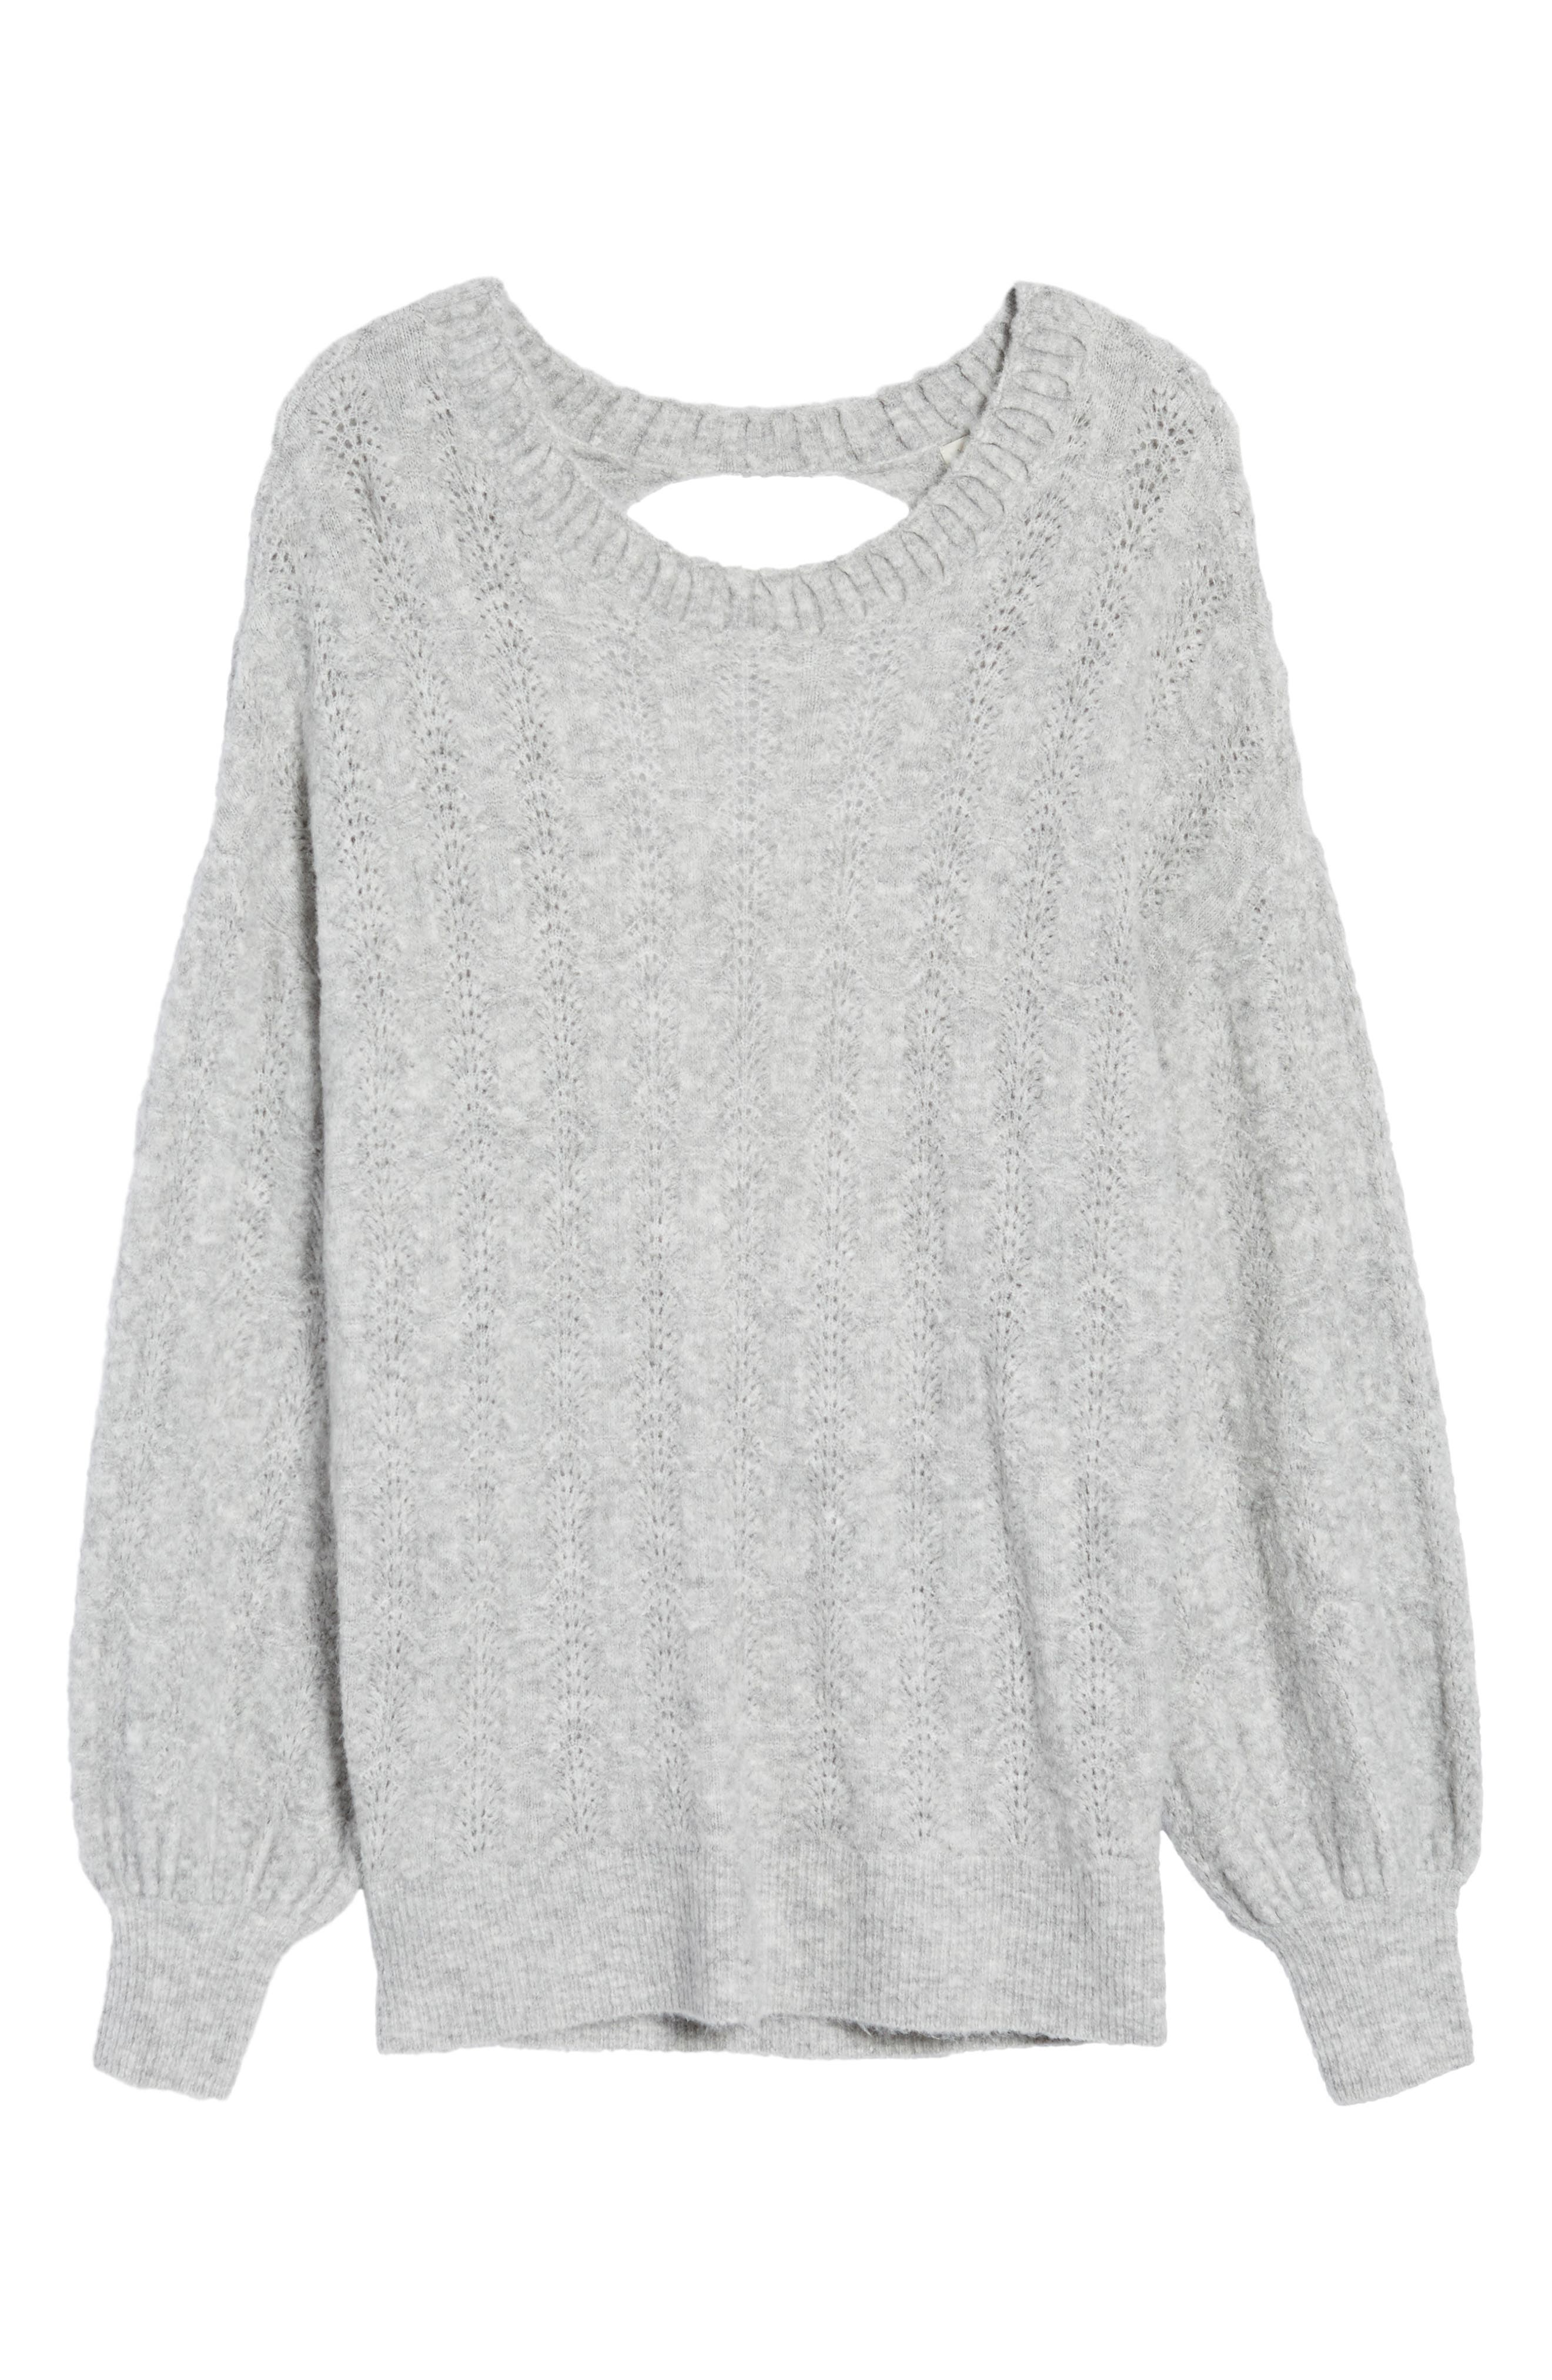 Open Back Sweater,                             Alternate thumbnail 6, color,                             Grey Heather